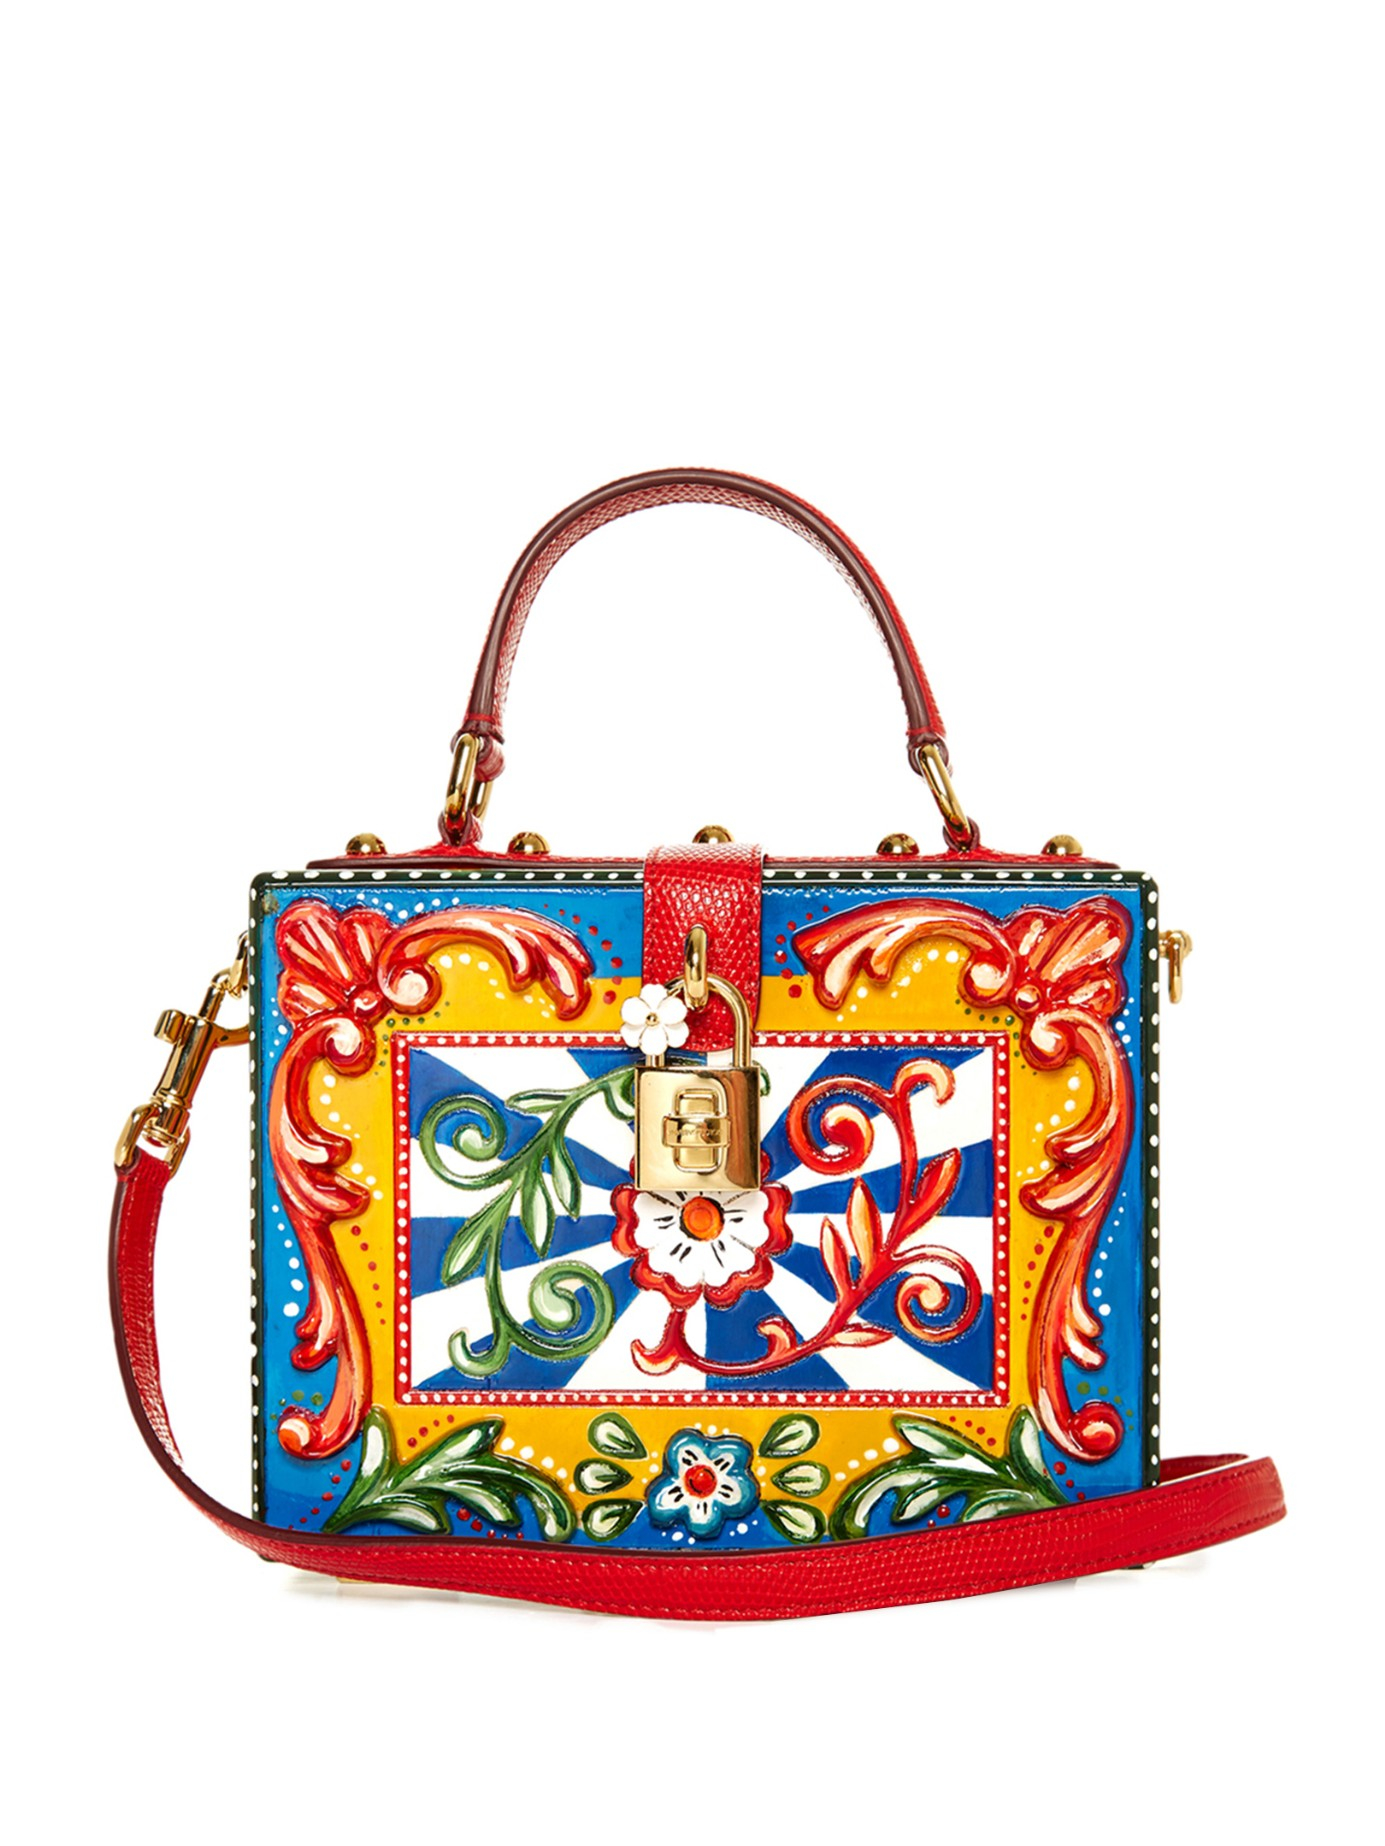 d0a39c2688ca Lyst - Dolce   Gabbana Dolce Hand-painted Floral-print Box Bag in Blue